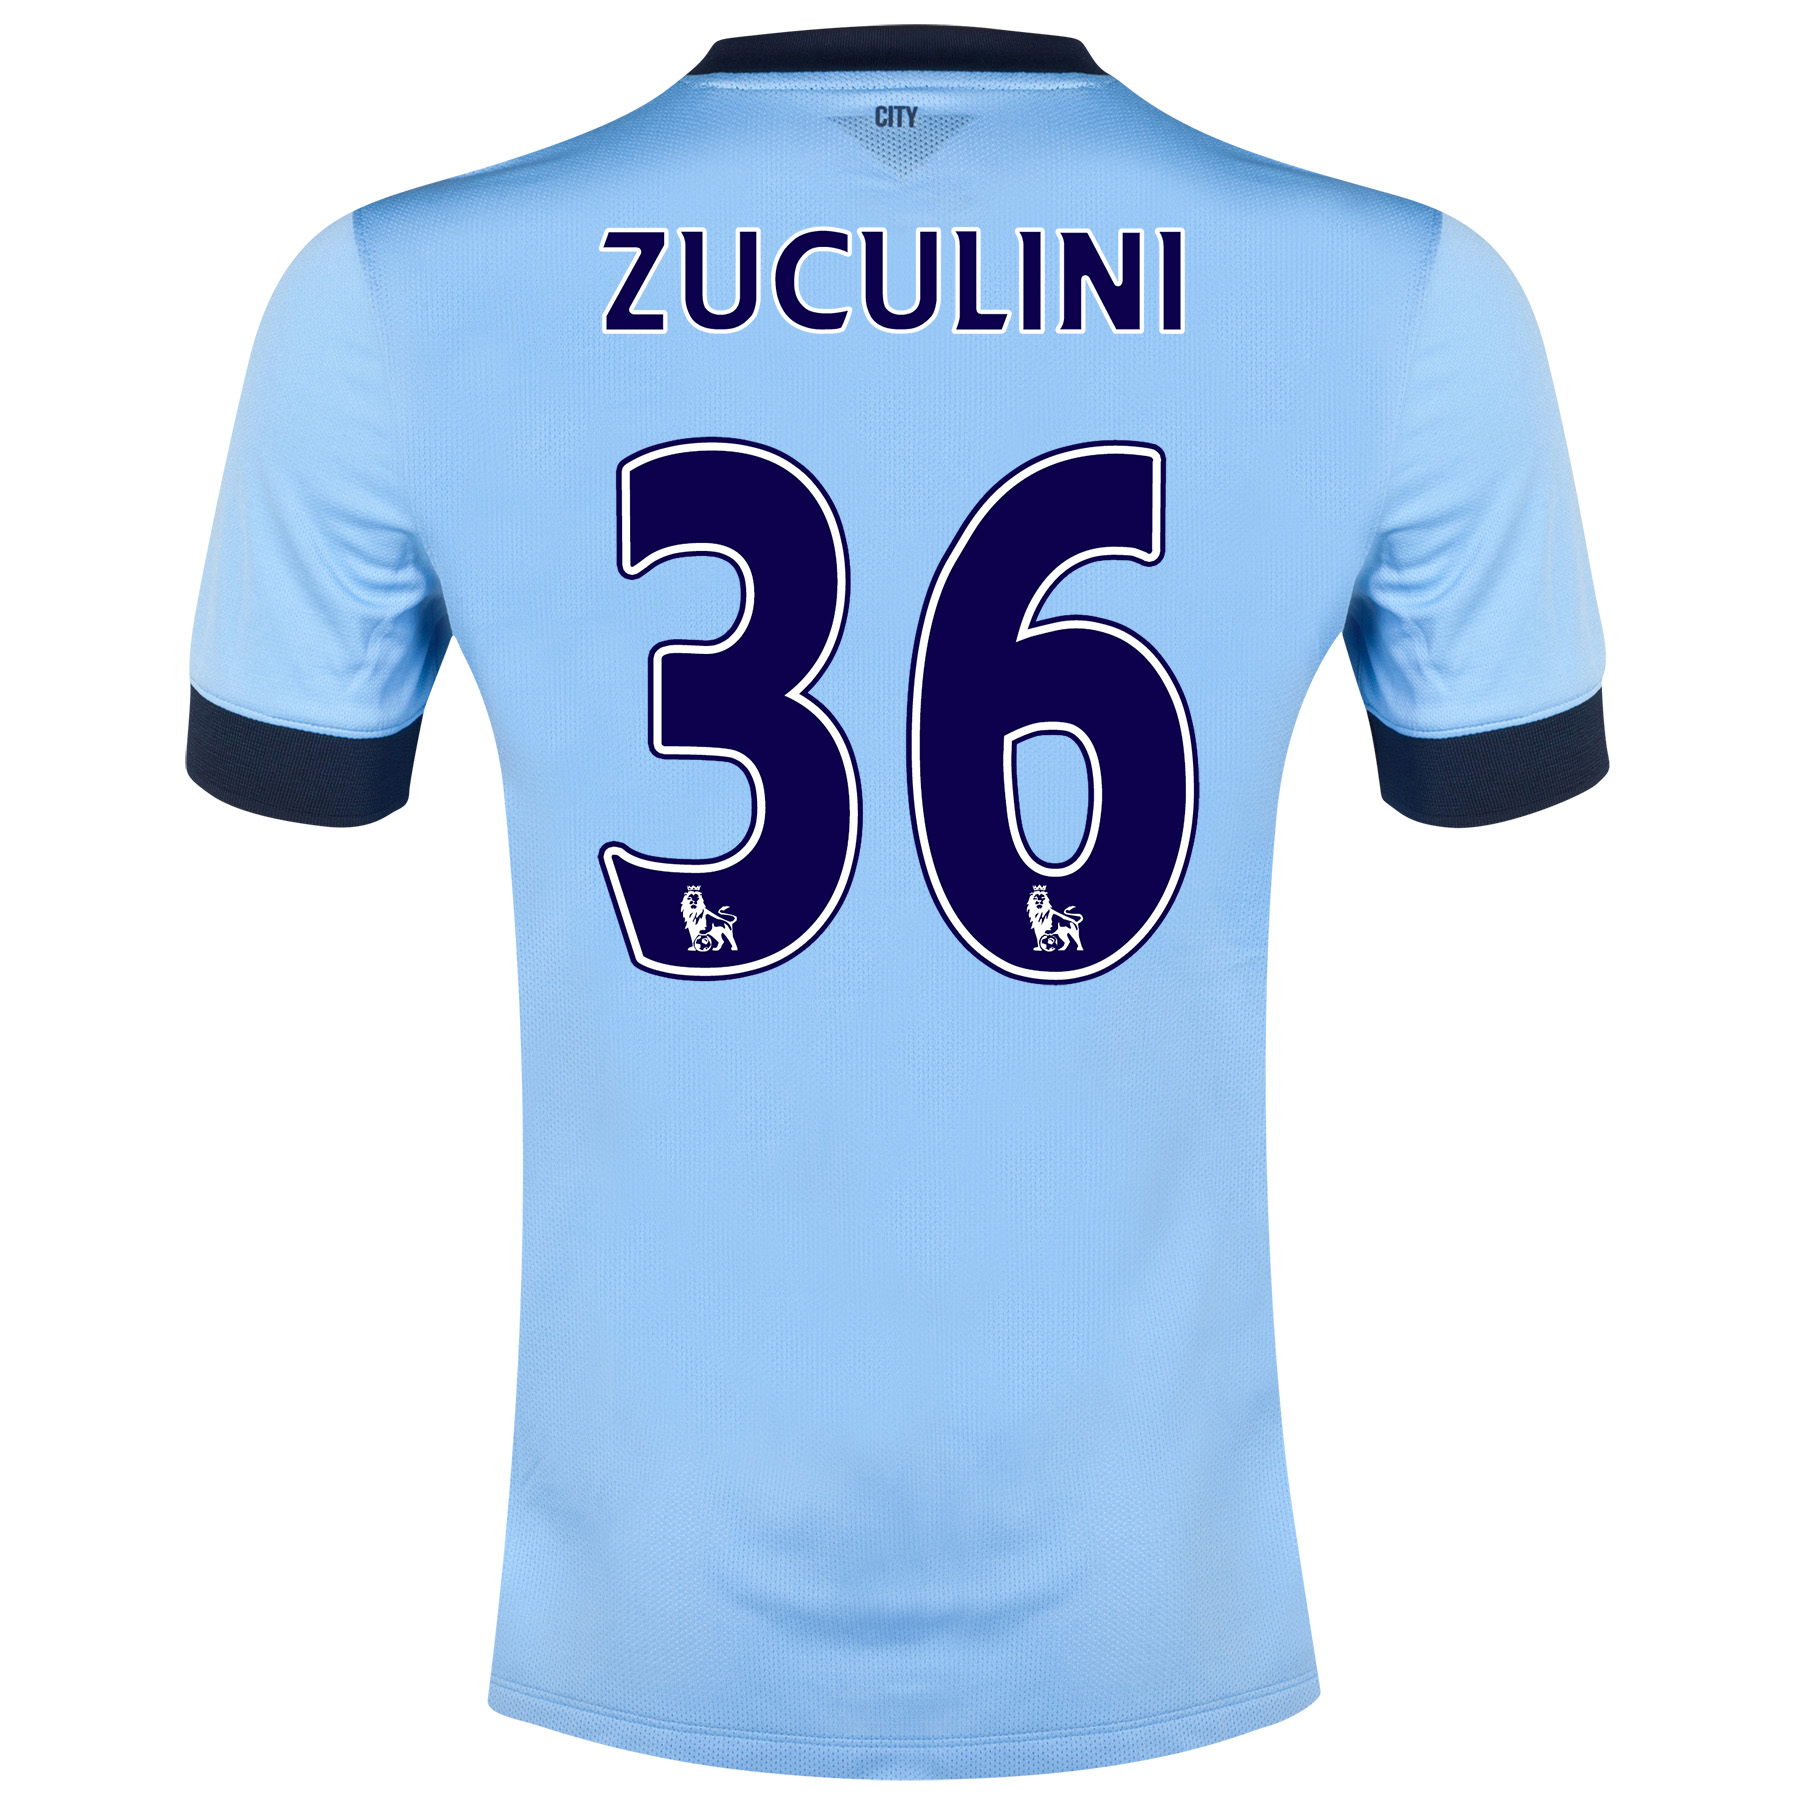 Manchester City Home Shirt 2014/15 - Kids Sky Blue with Zuculini 36 printing